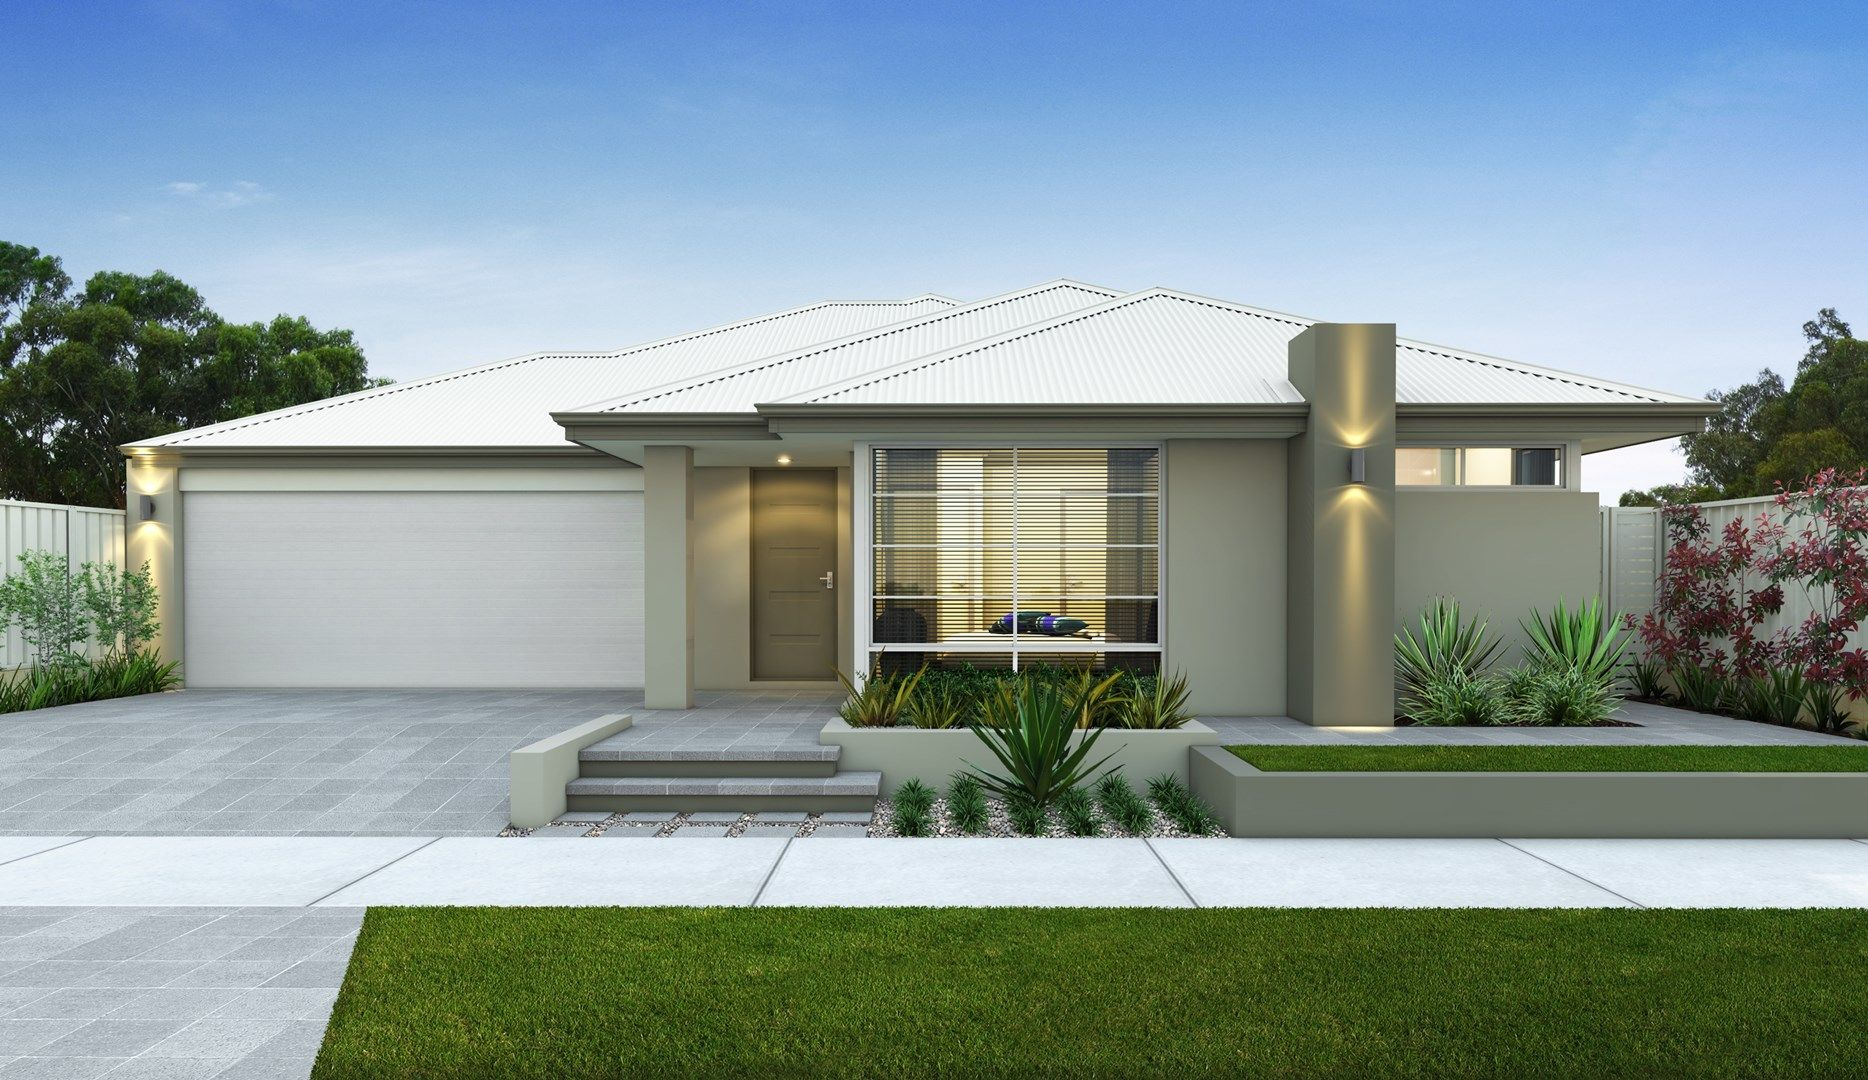 Lot 192 Waterford Way, Kingston, Australind WA 6233, Image 0